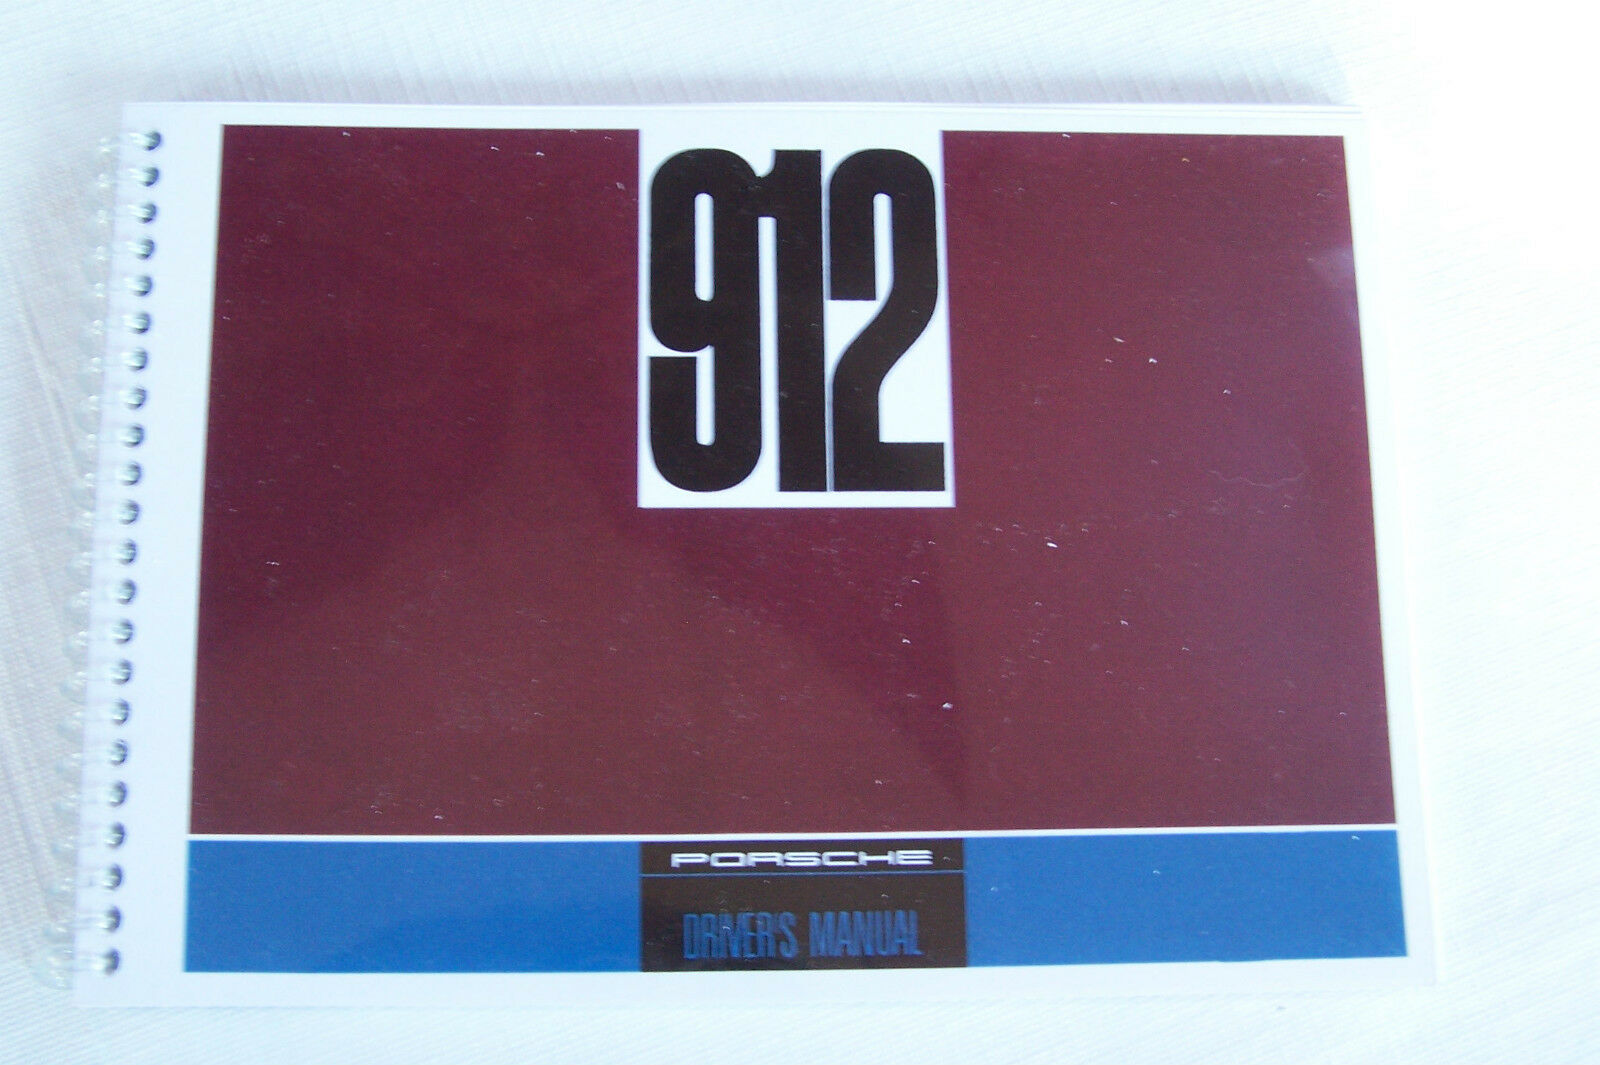 1967 Porsche 912 Owners Manual Parts Service reprint new 1966 1 of 11Only 1  available 1967 Porsche 912 Owners Manual ...